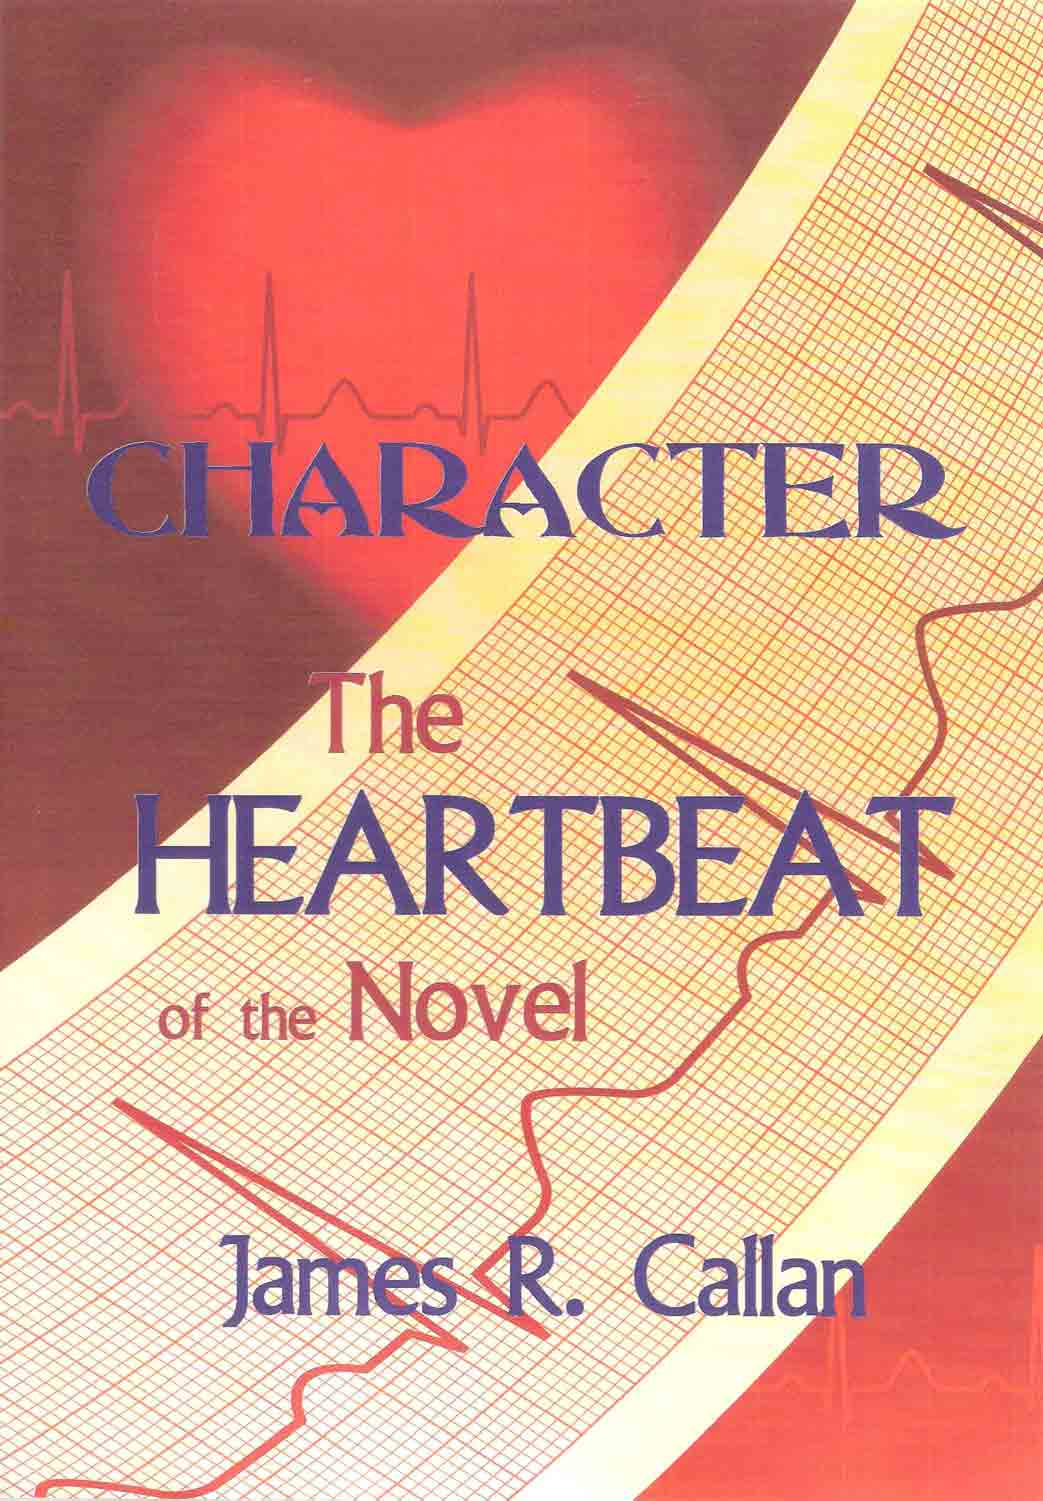 Character: The Heartbeat of the Novel